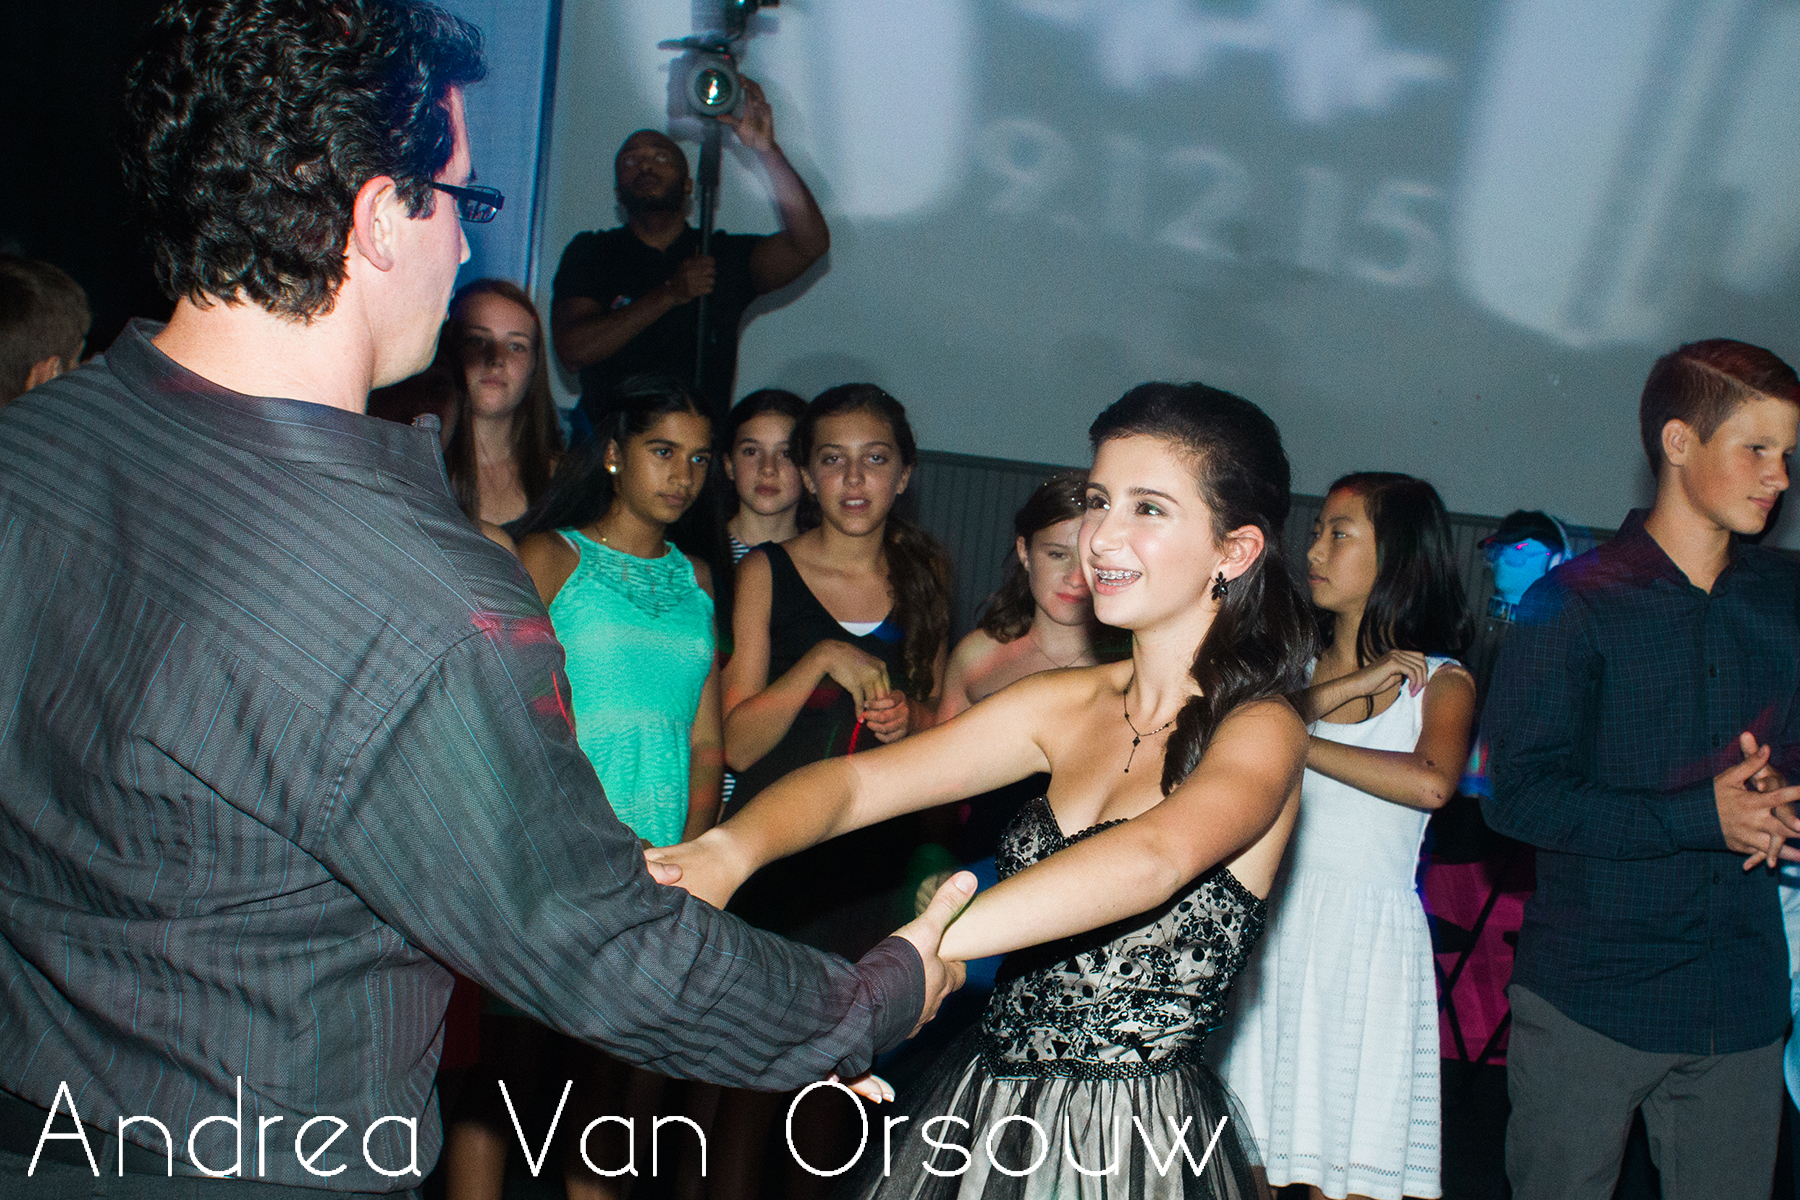 father_daughter_dance_bat_mitzvah.jpg